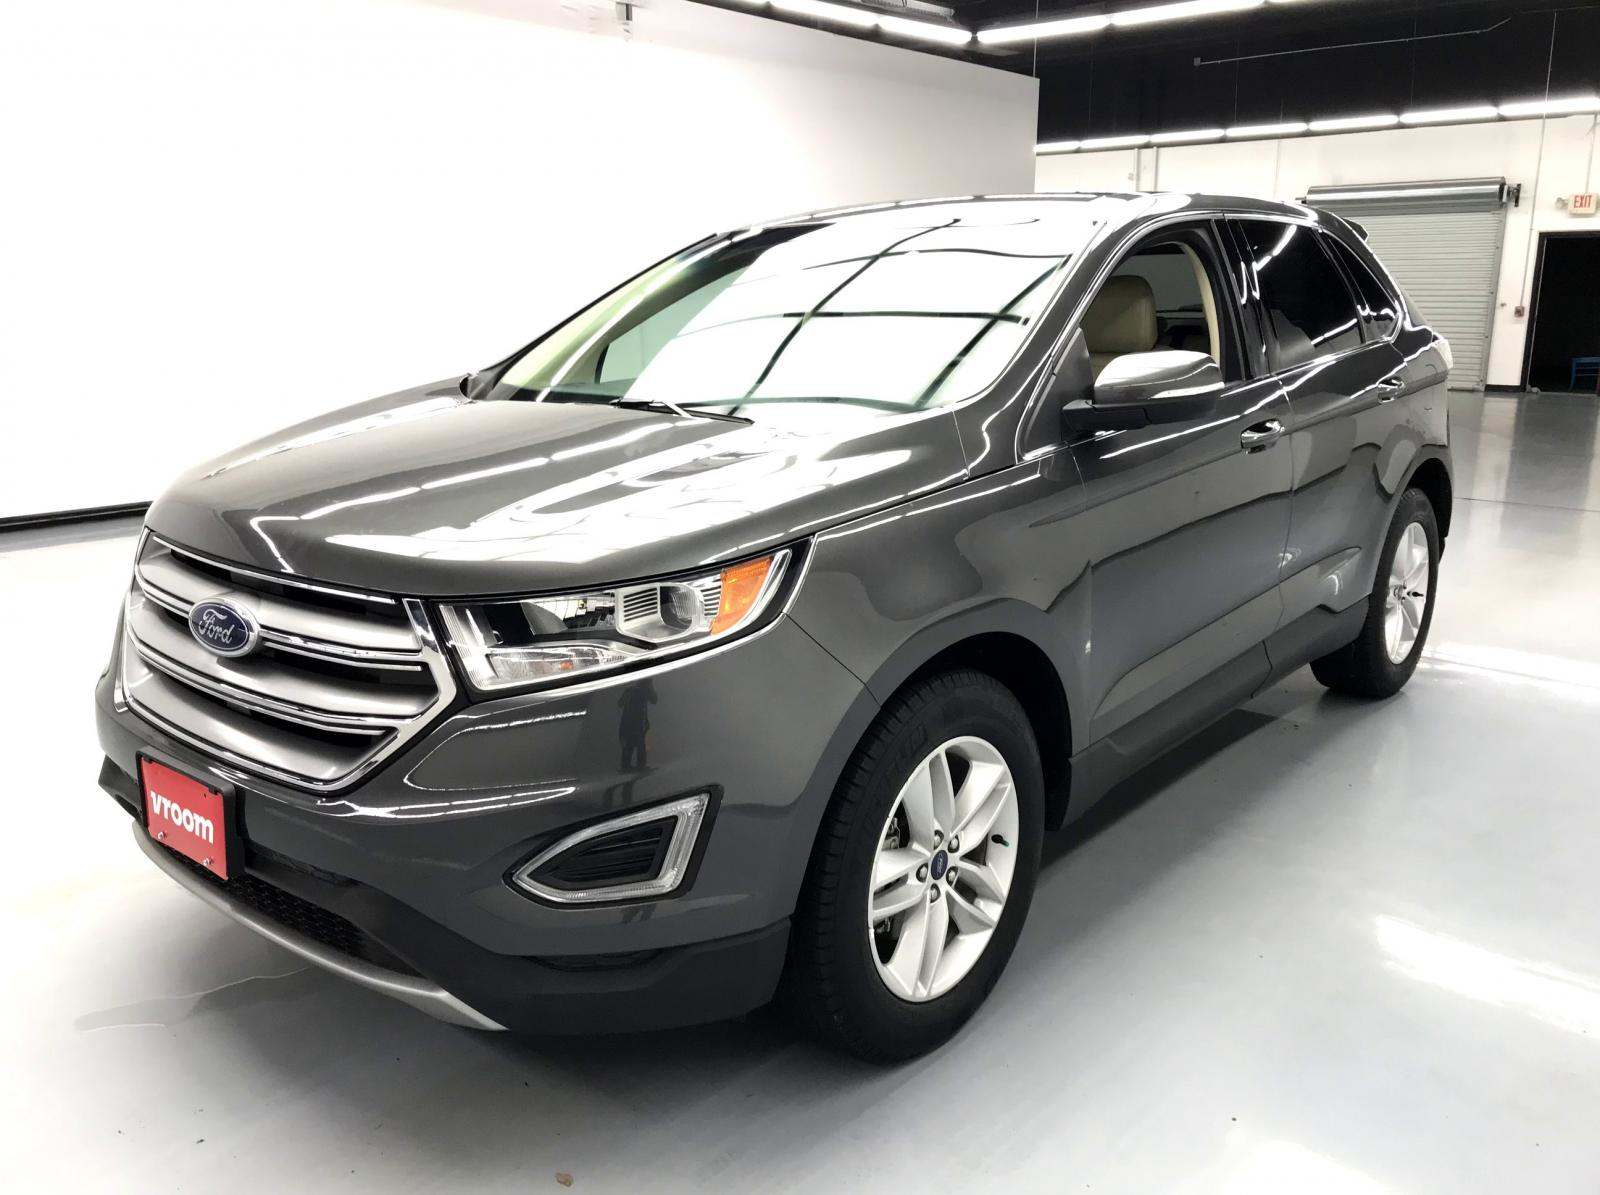 used Ford Edge 2018 vin: 2FMPK3J8XJBC16366